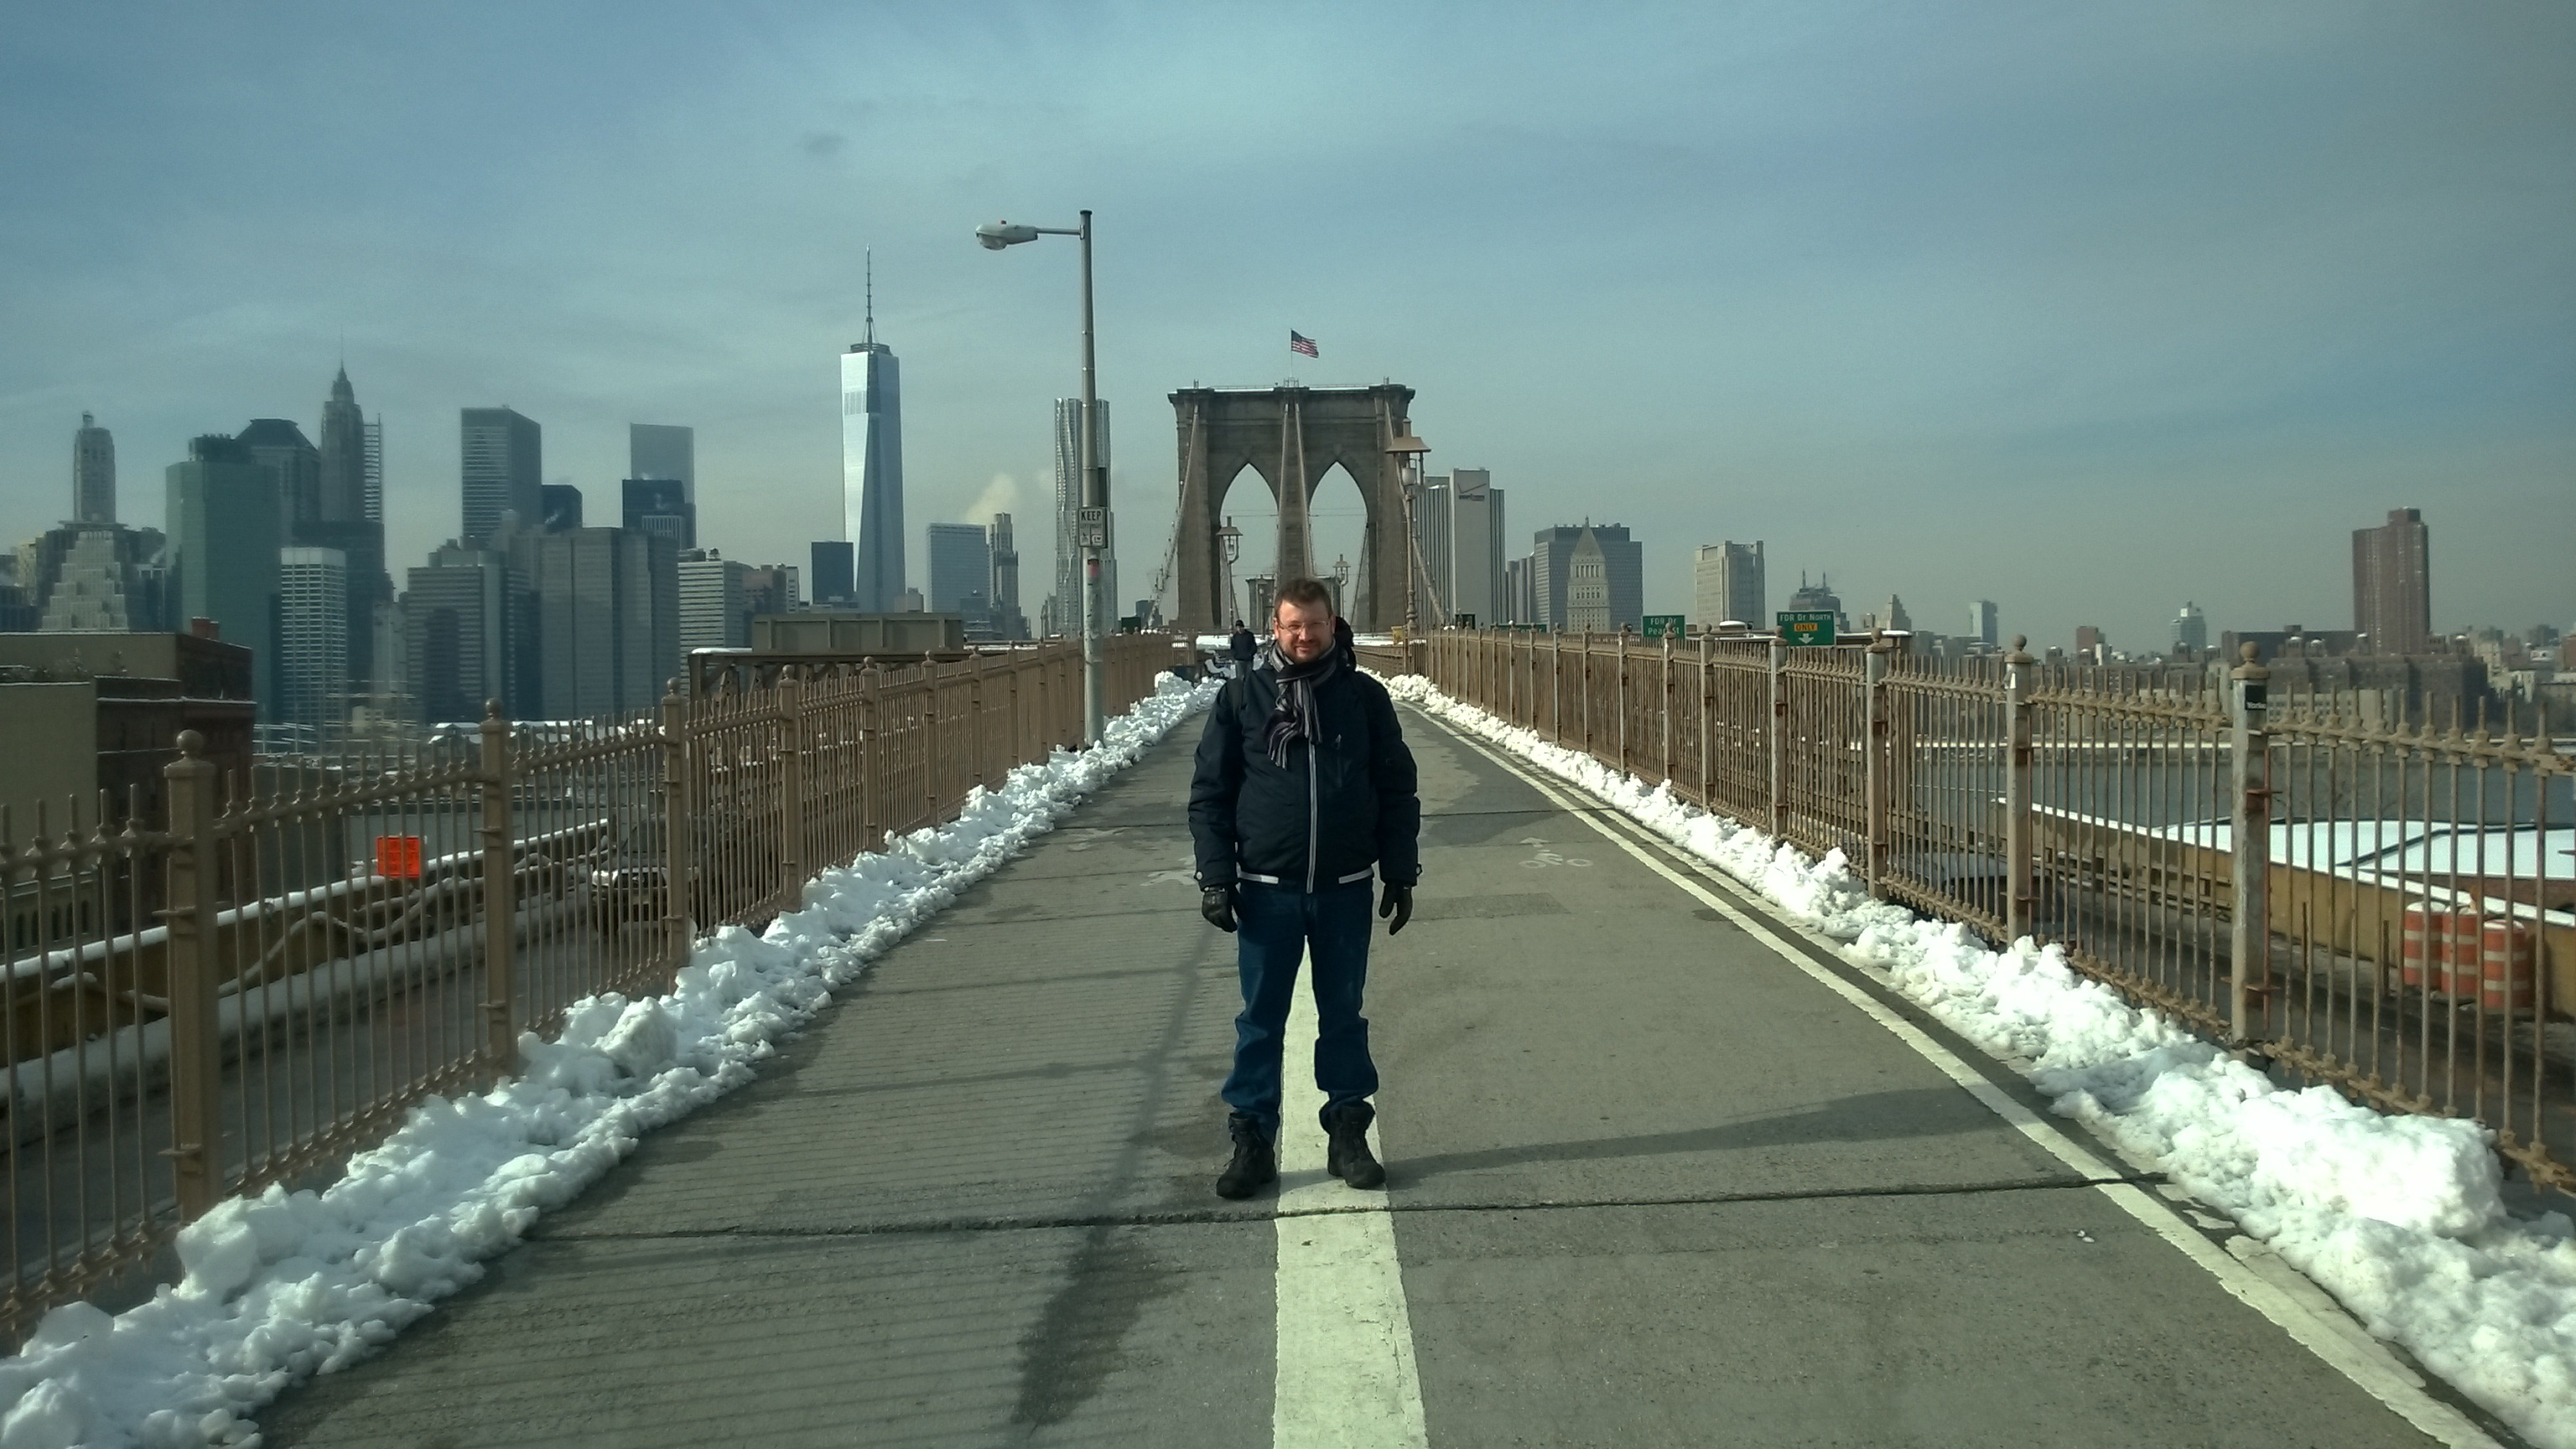 My friend Tue at the Brooklyn Bridge